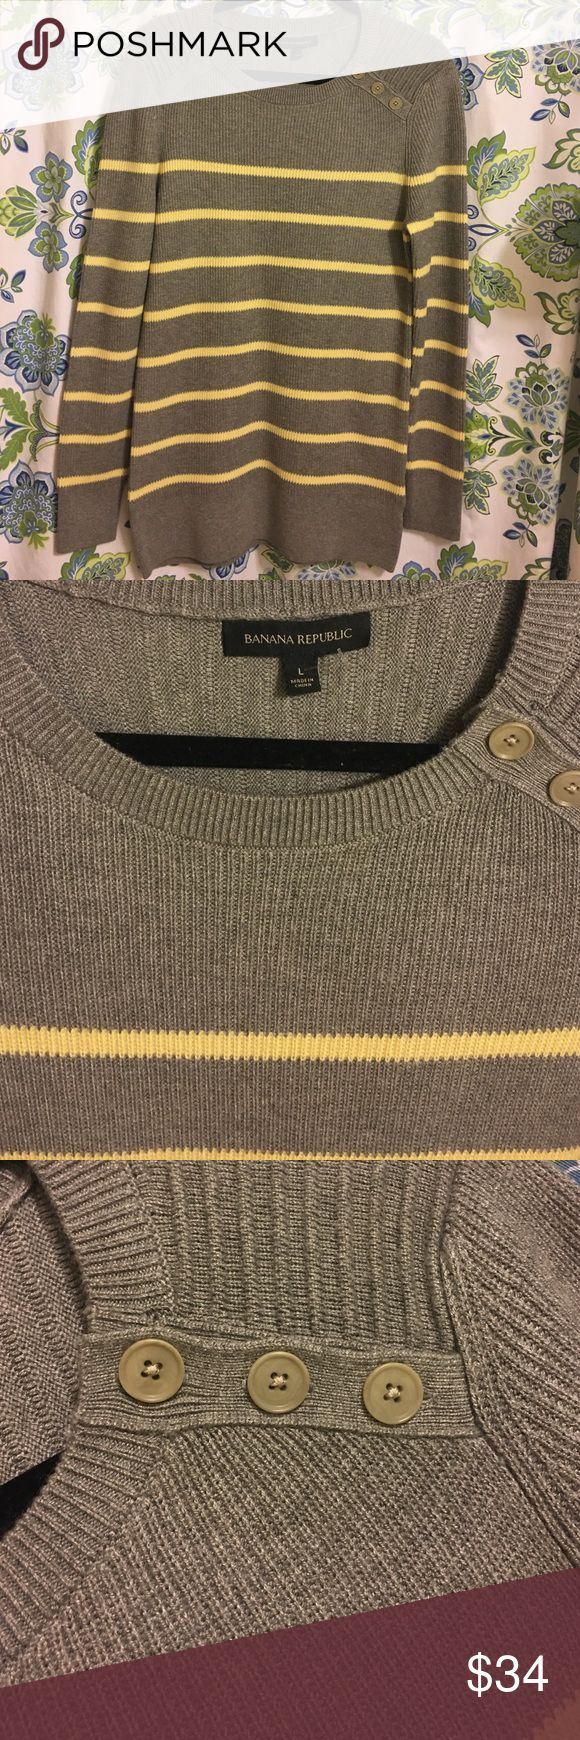 BANANA REPUBLIC  Size L NWOT Long Sweater NWOT,perfect sweater to wear over leggings or skinny jeans.Machine wash . Banana Republic Sweaters Crew & Scoop Necks